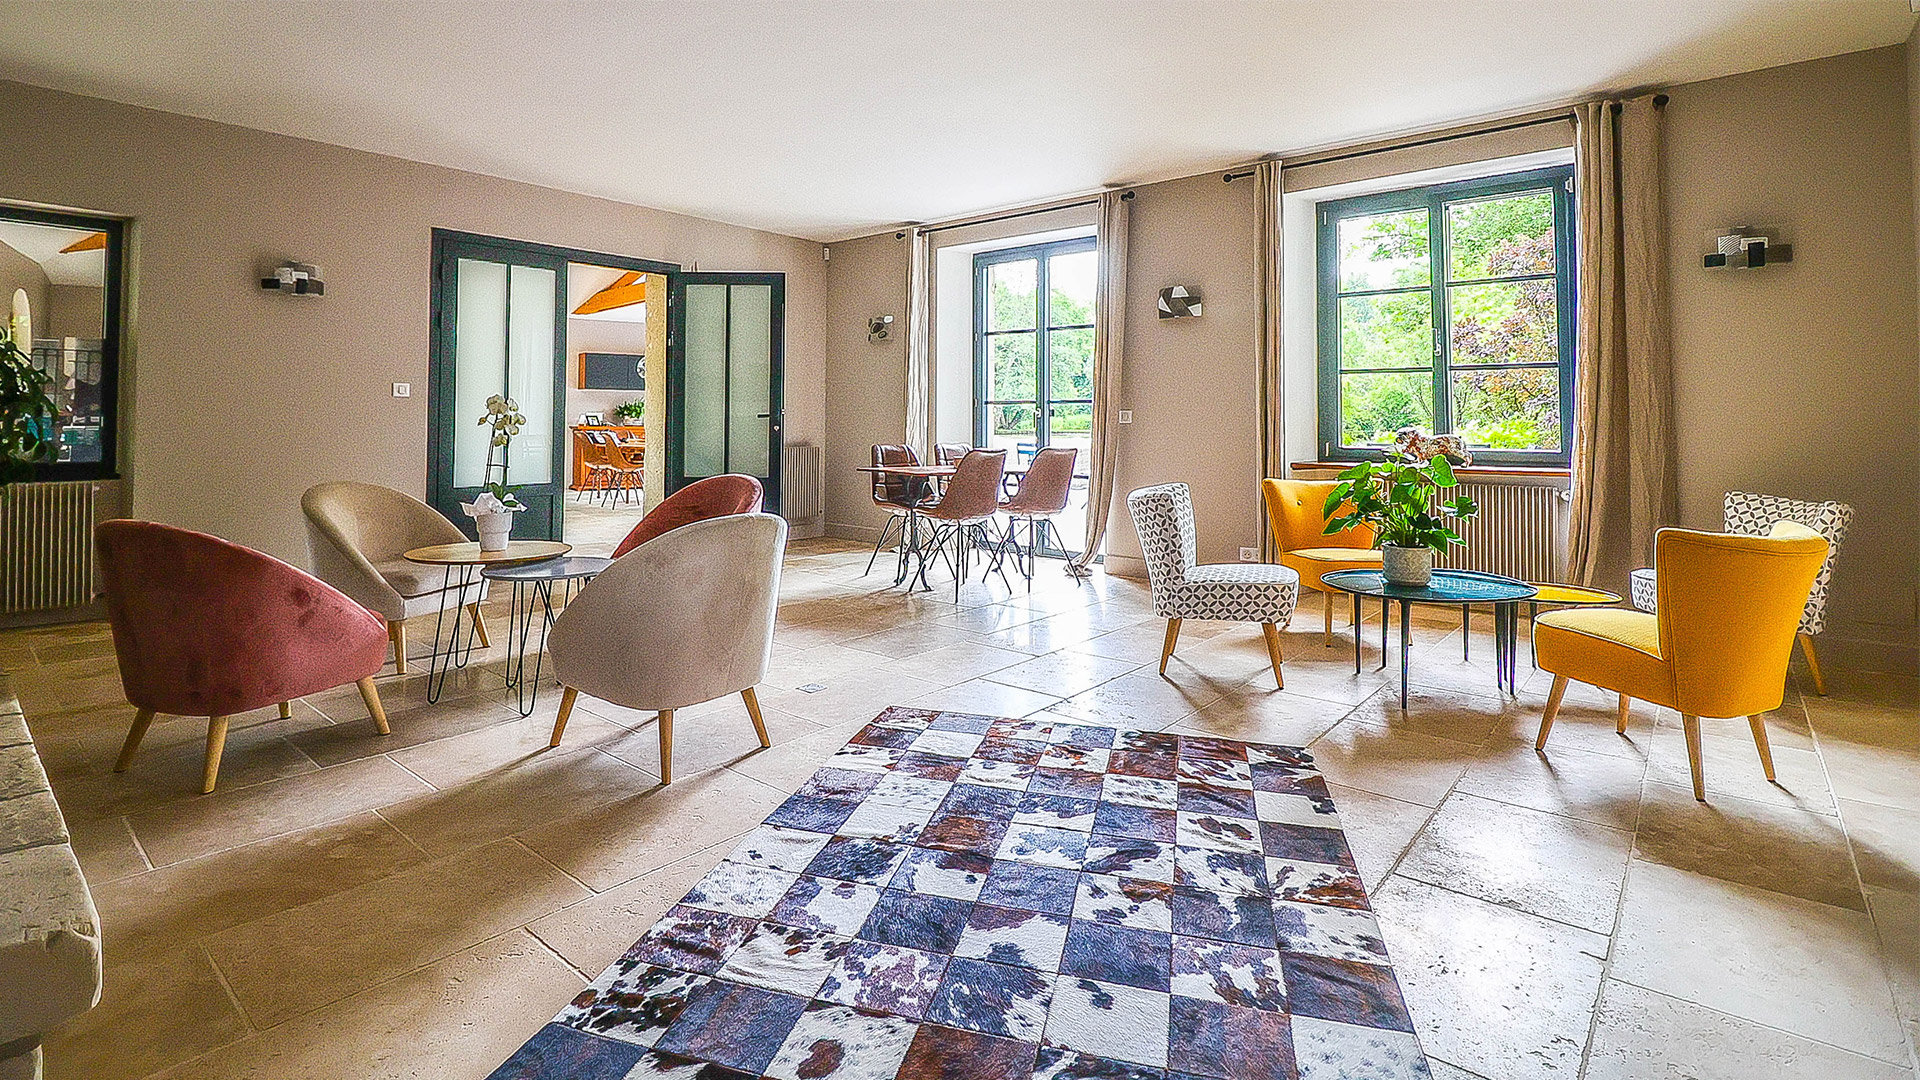 reservation-maison-hote-compiegne-oise-picardie-foret-moulin-ortille-booking